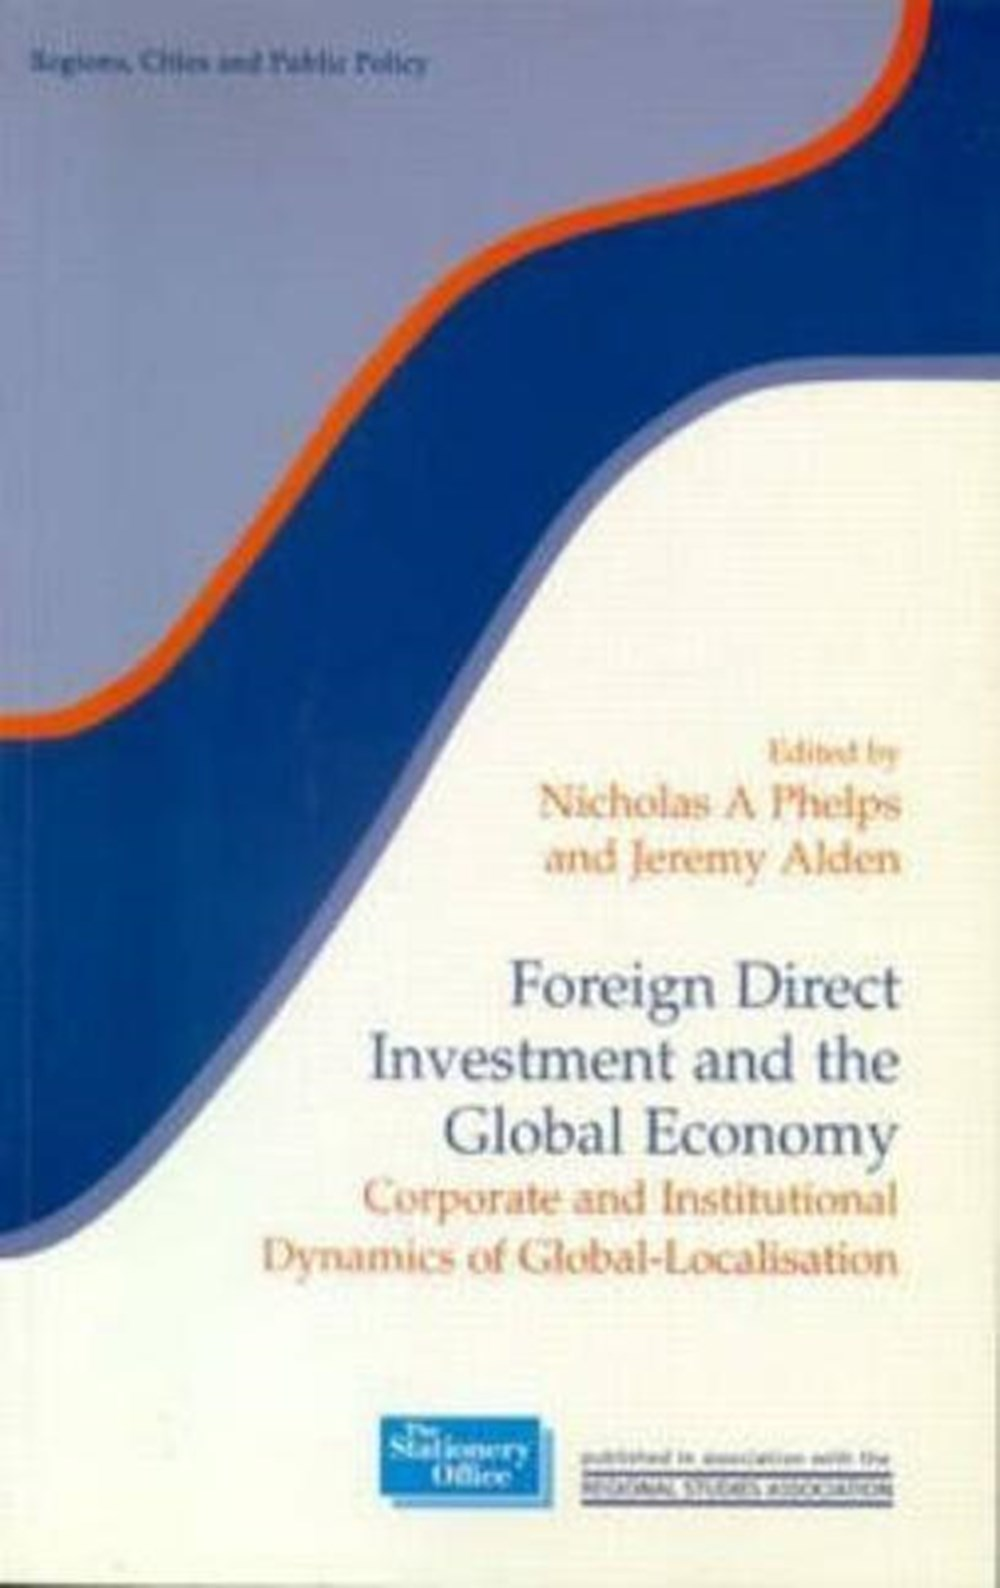 Foreign Direct Investment and the Global Economy Corporate and Institutional Dynamics of Global-Loca